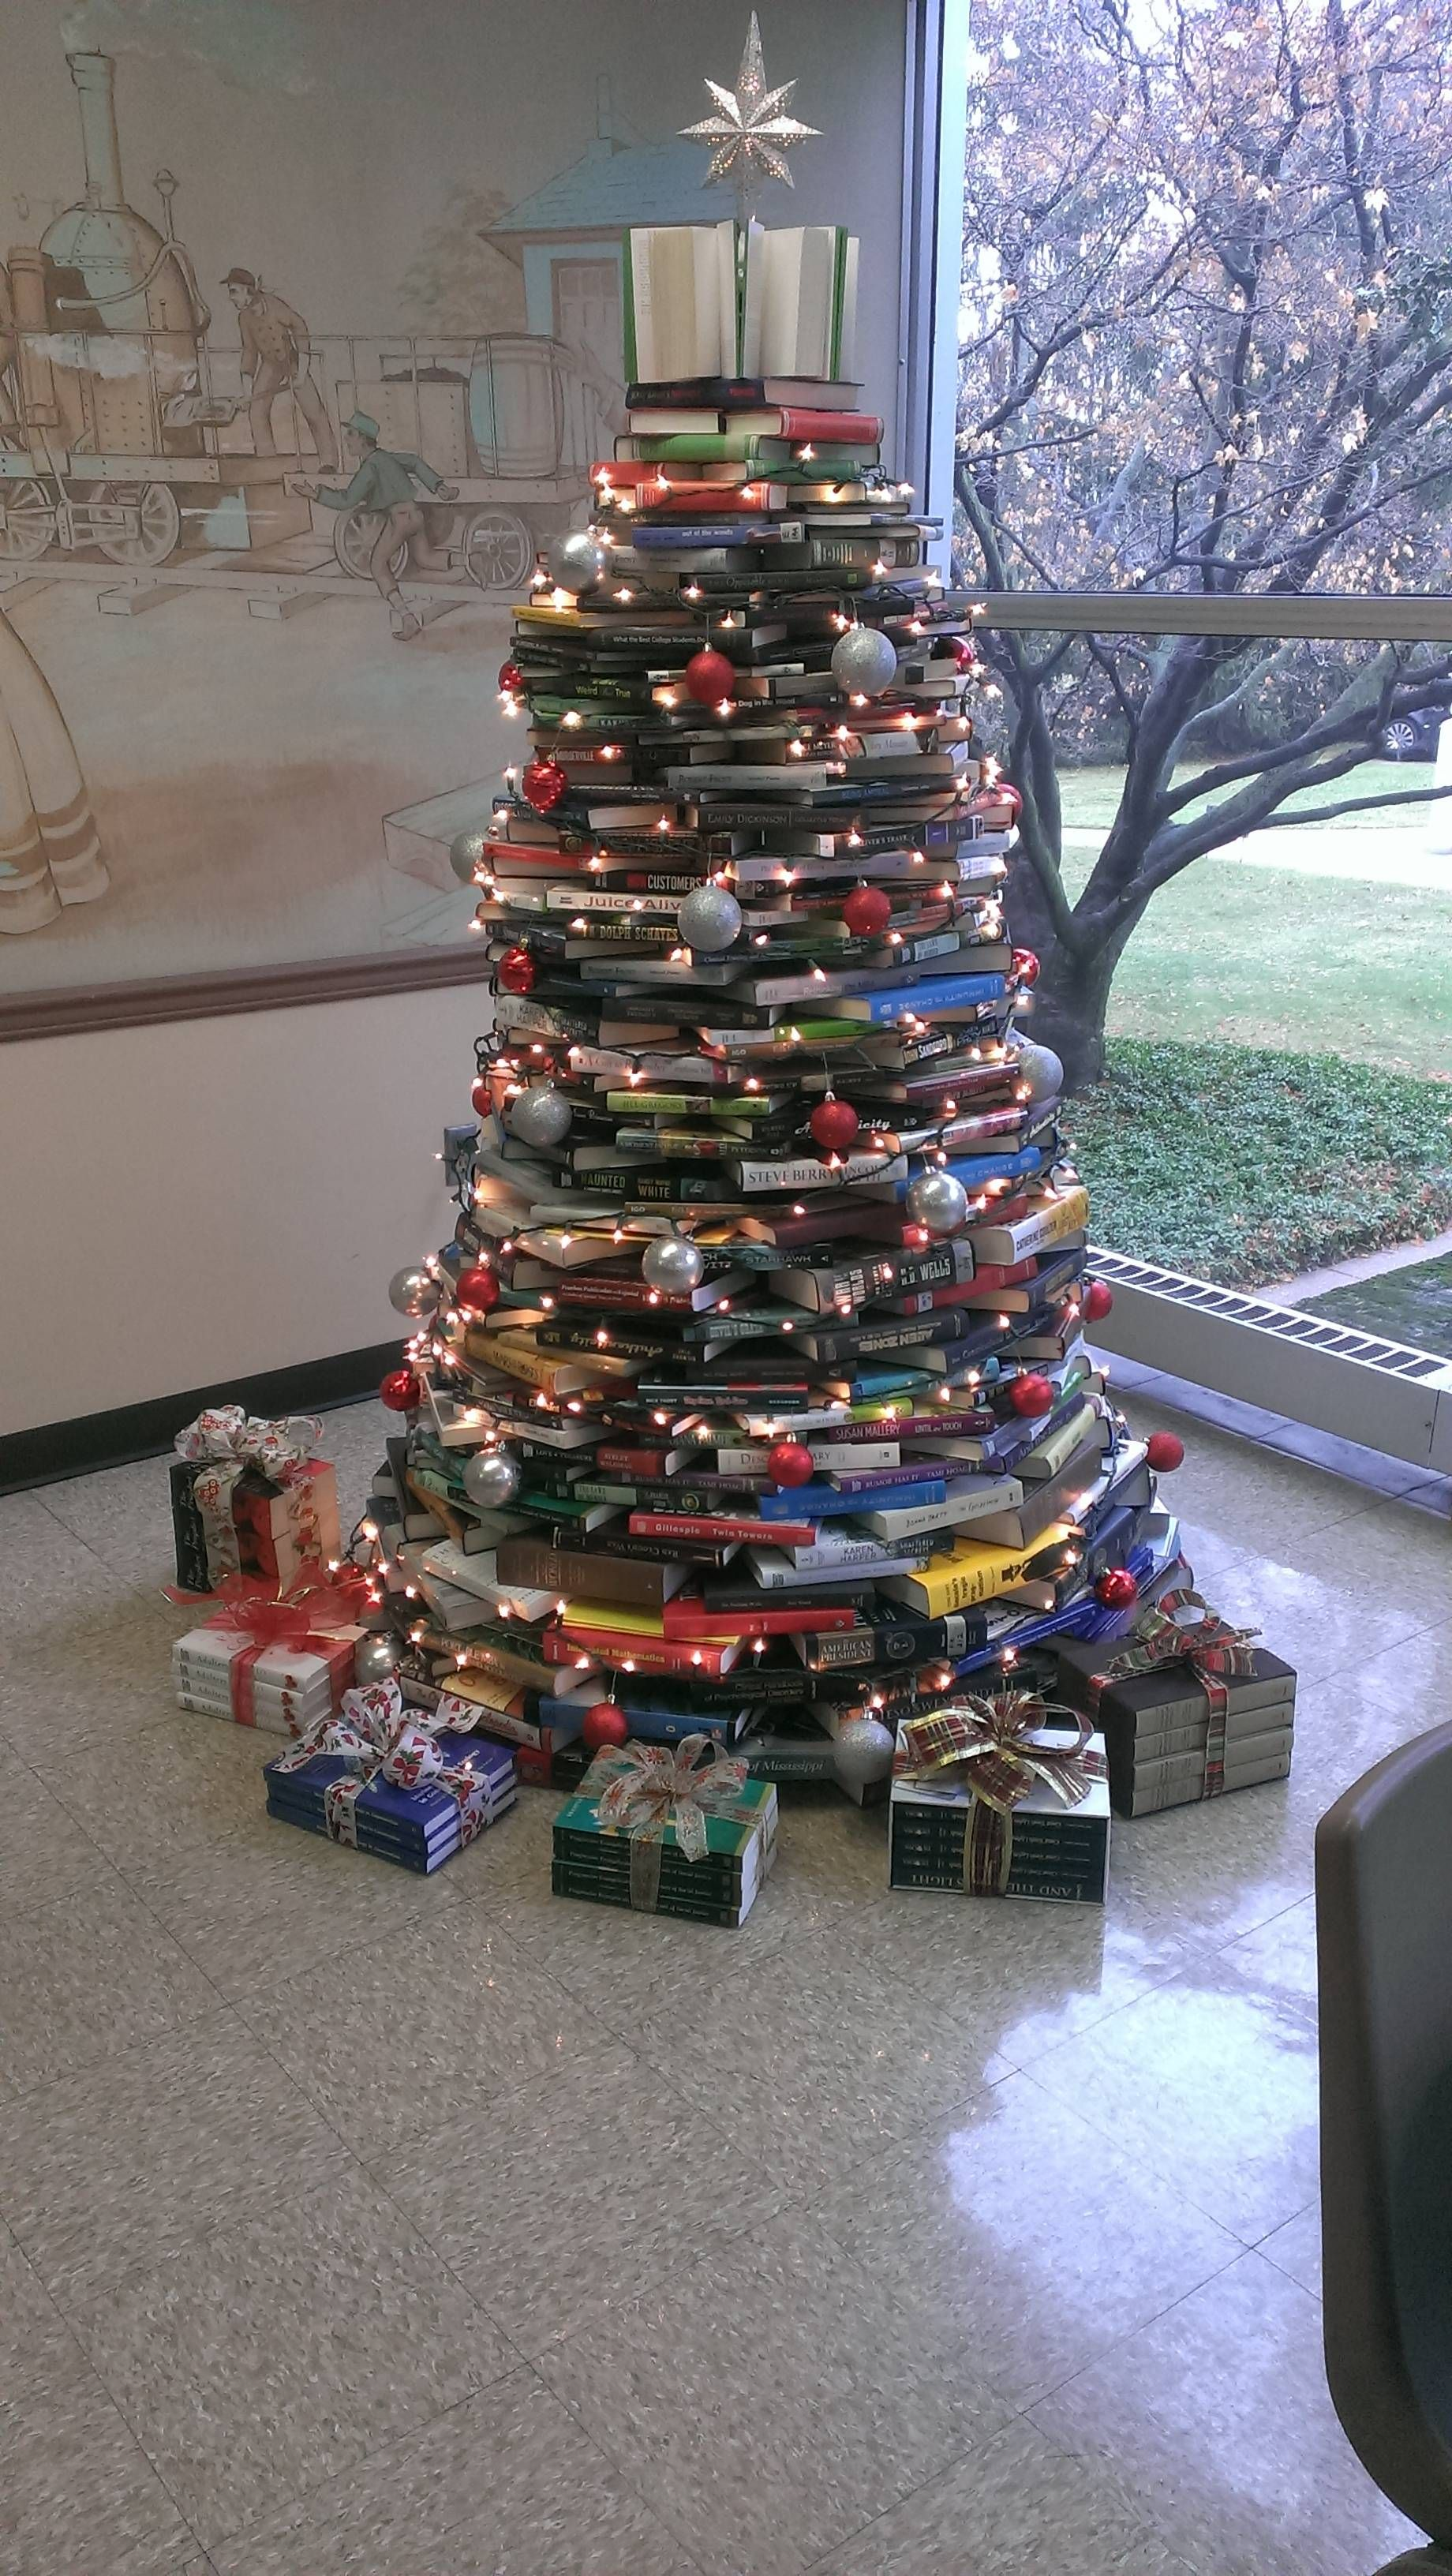 My work made a Christmas tree out of books. - Imgur